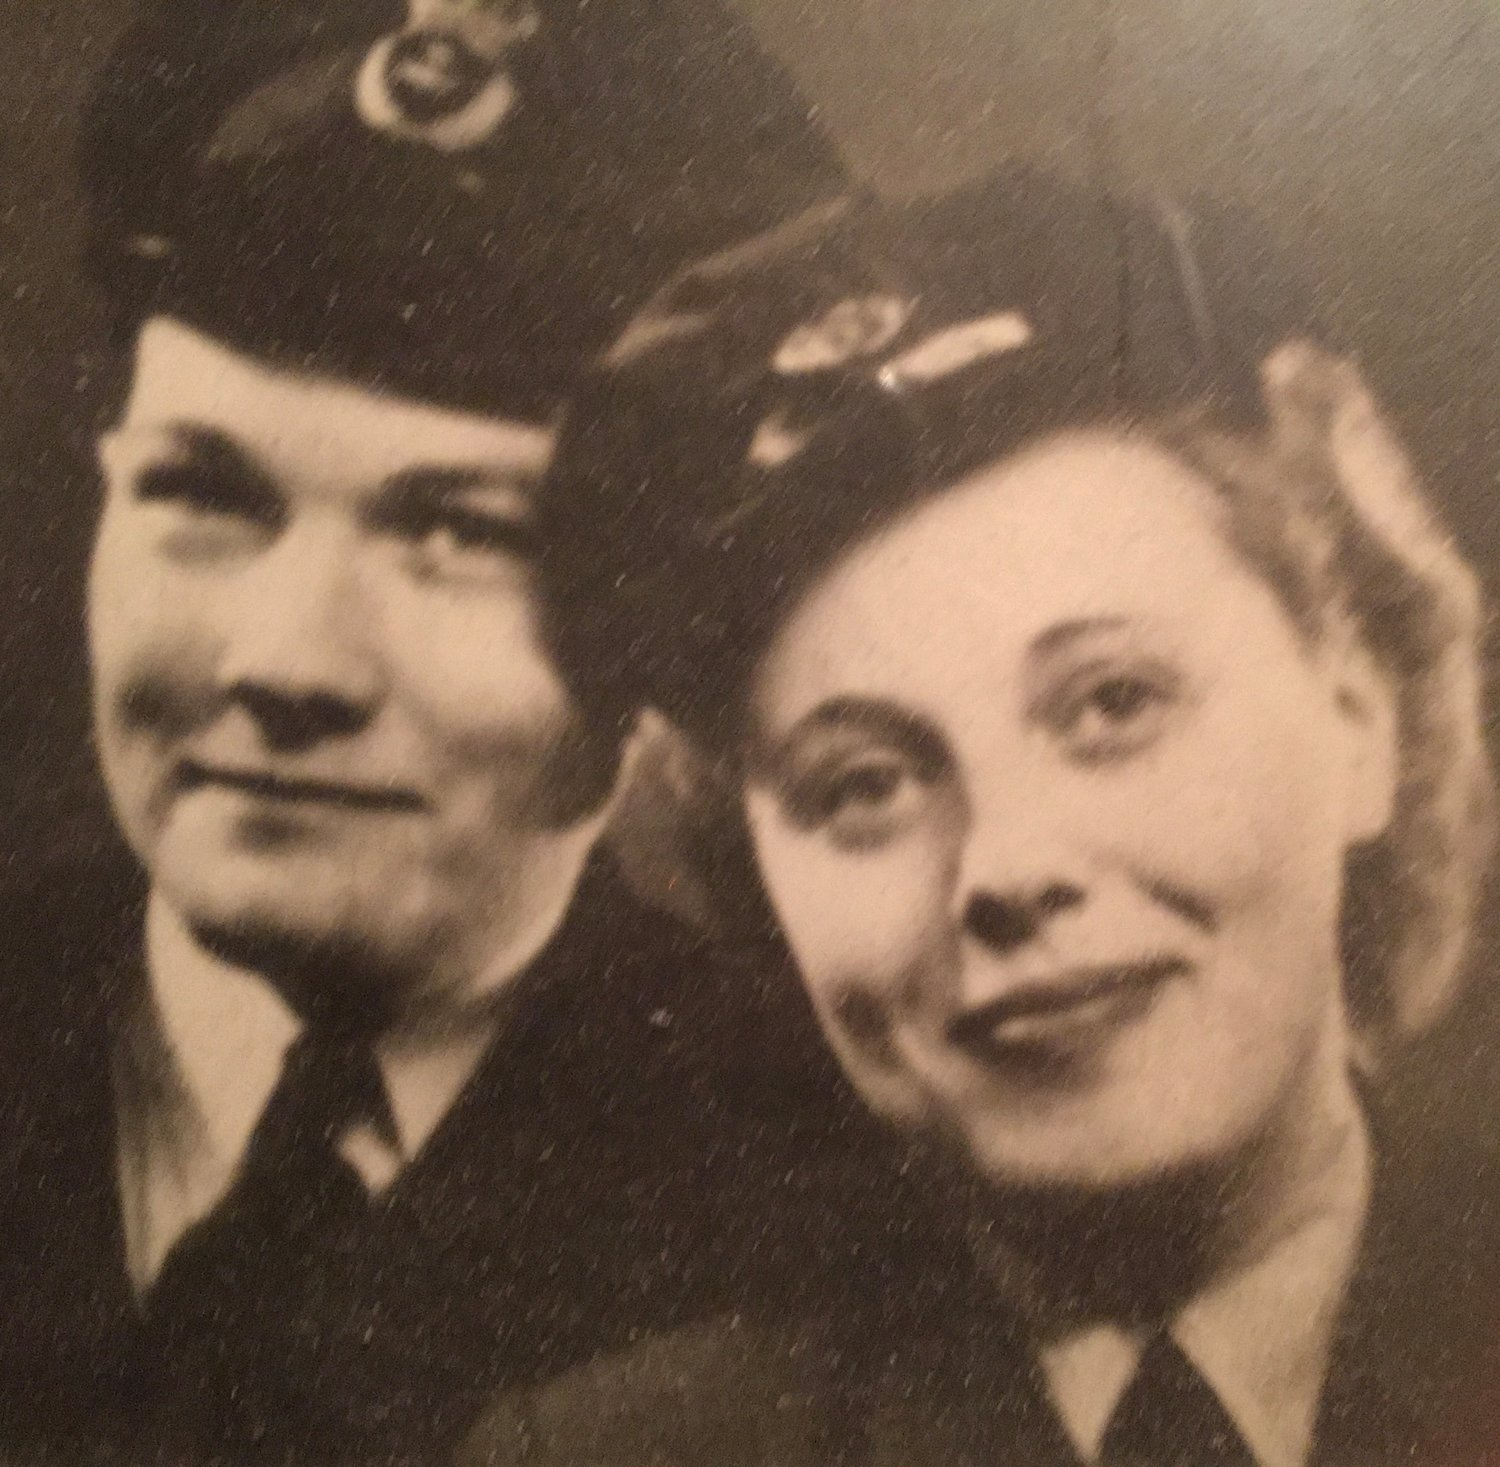 Deeple with her husband, Ted. She served in the Royal Air Force Women's Auxiliary during World War II after escaping to England from Nazi Germany.